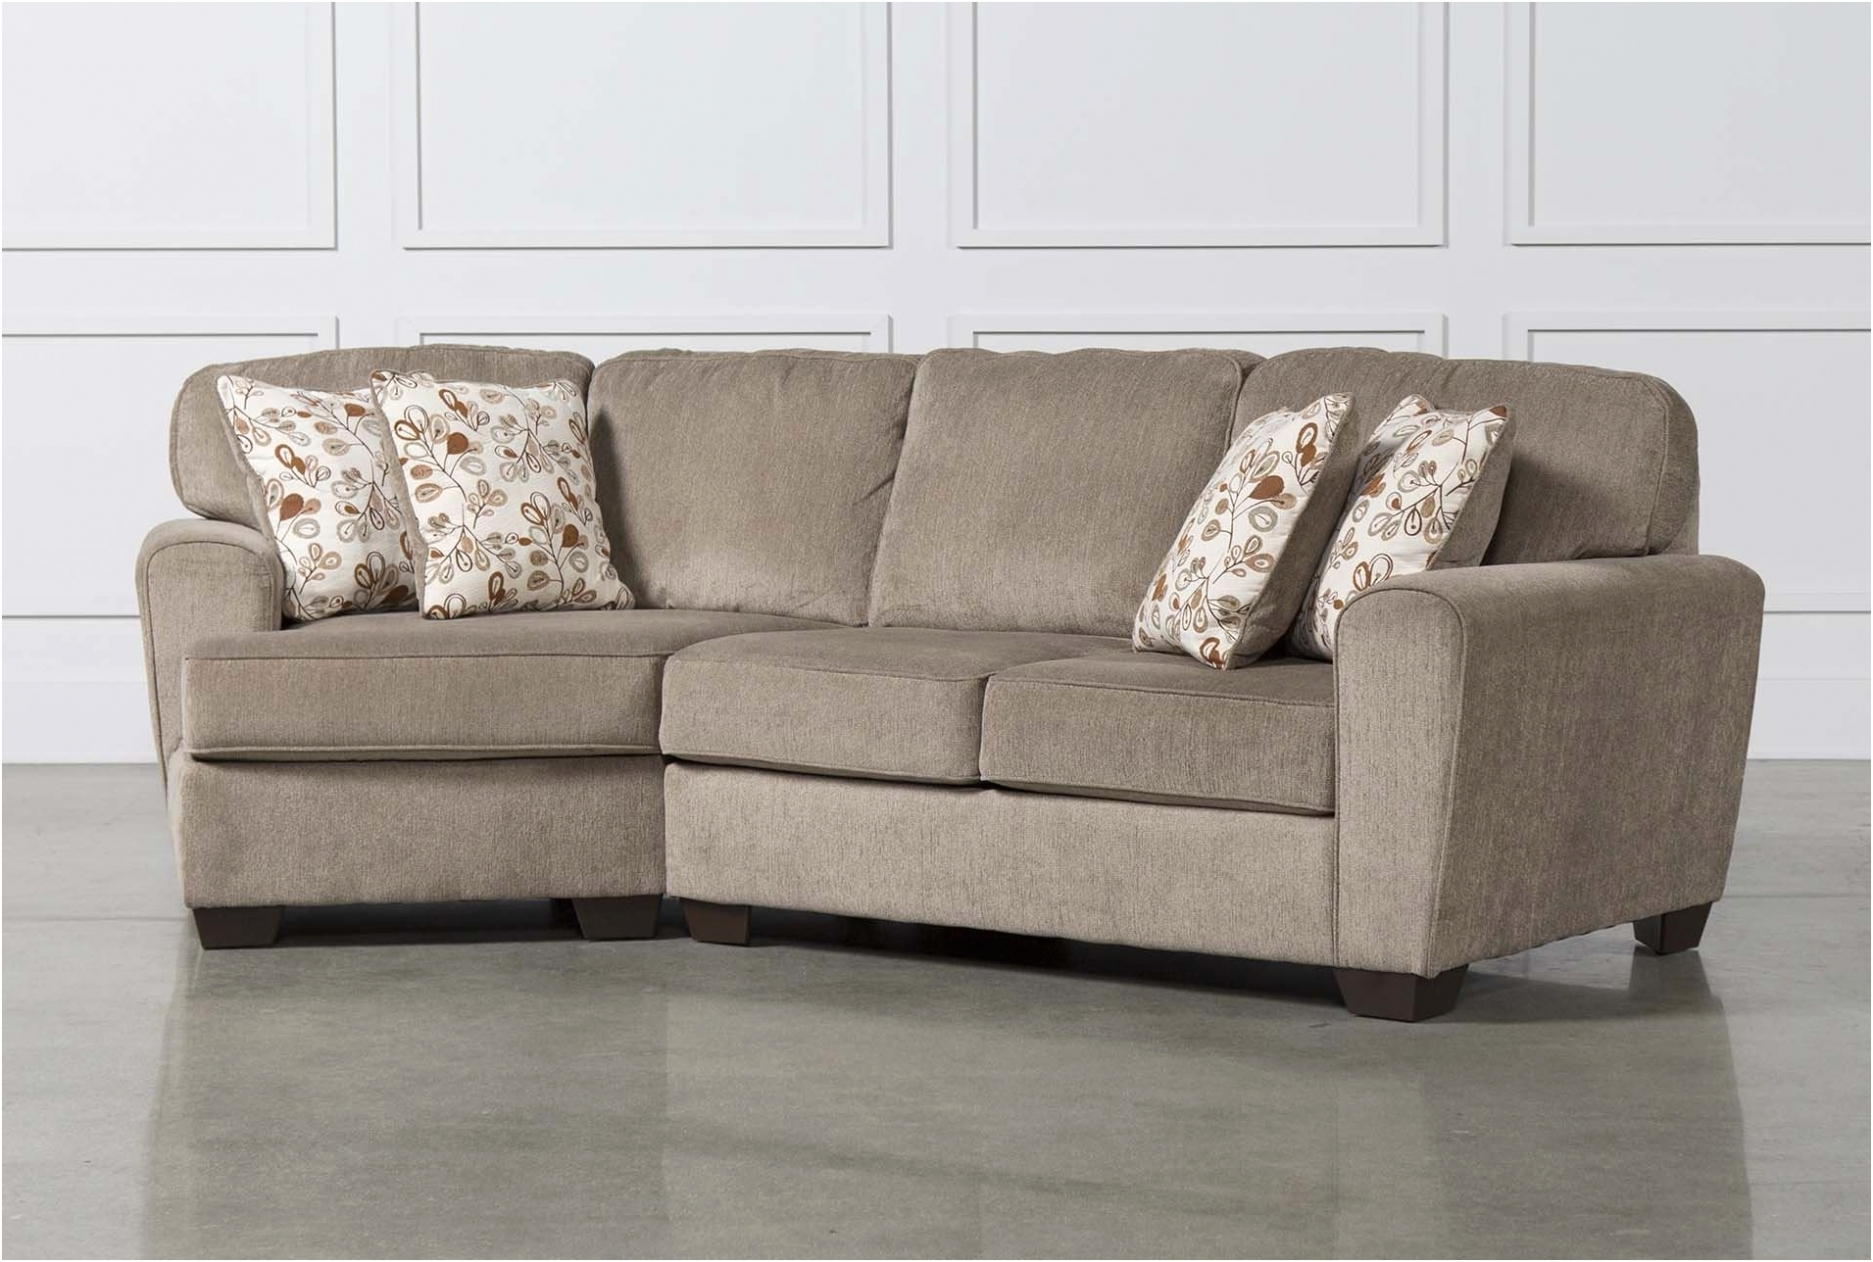 Living Spaces Sectional Sofa Bed - Sofa Design Ideas throughout Aquarius Light Grey 2 Piece Sectionals With Laf Chaise (Image 18 of 30)